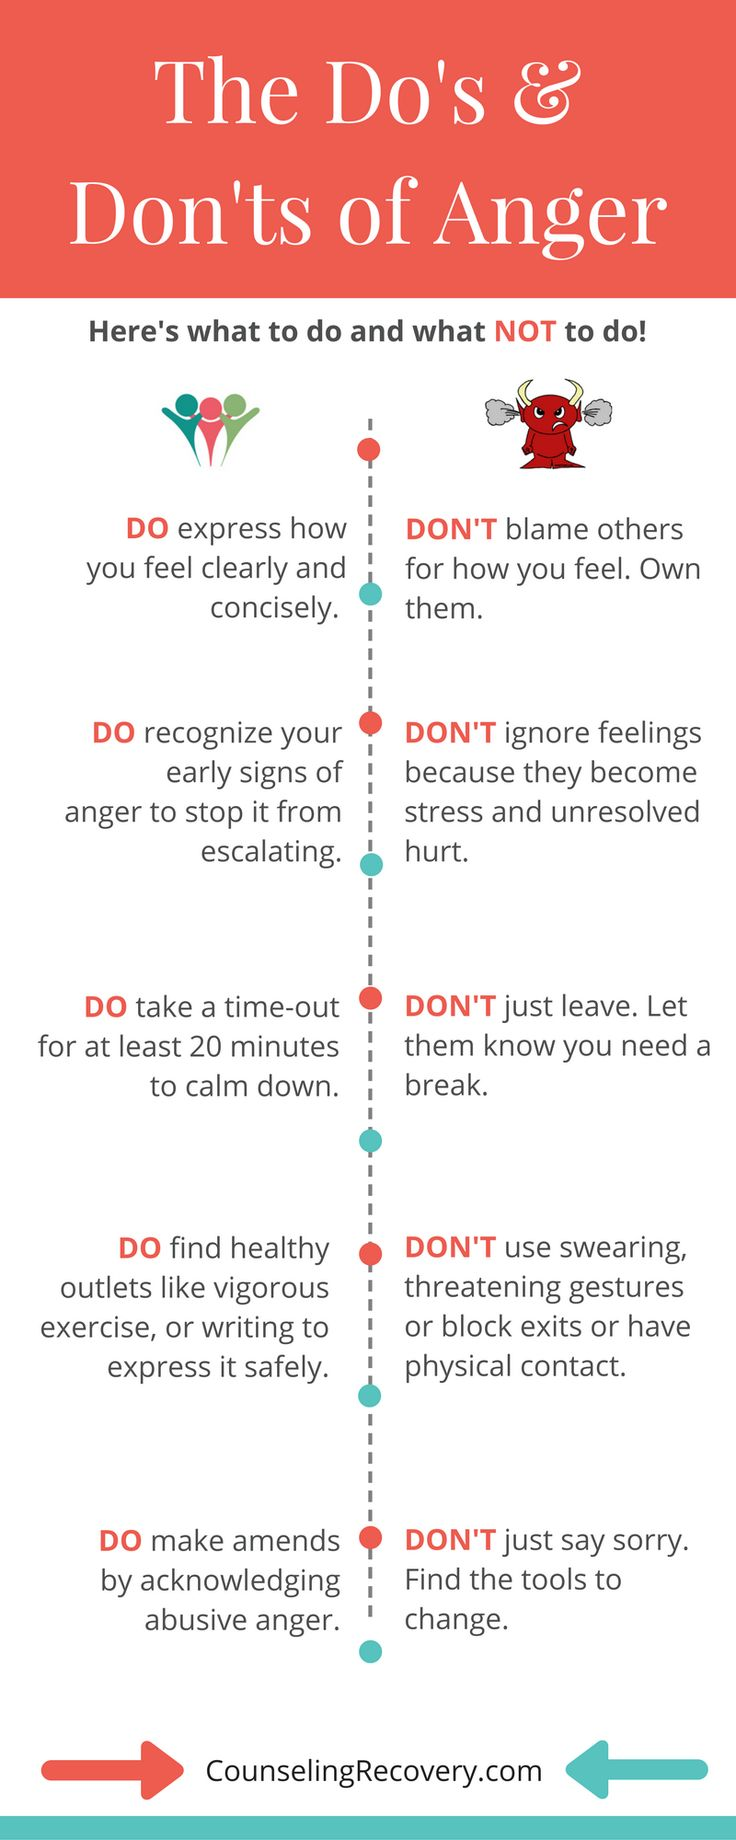 Here are some guidelines to manage stress and anger before it hurts your relationships. Learning to recognize the difference between healthy anger and destructive anger is the first step. Click the image to read more.